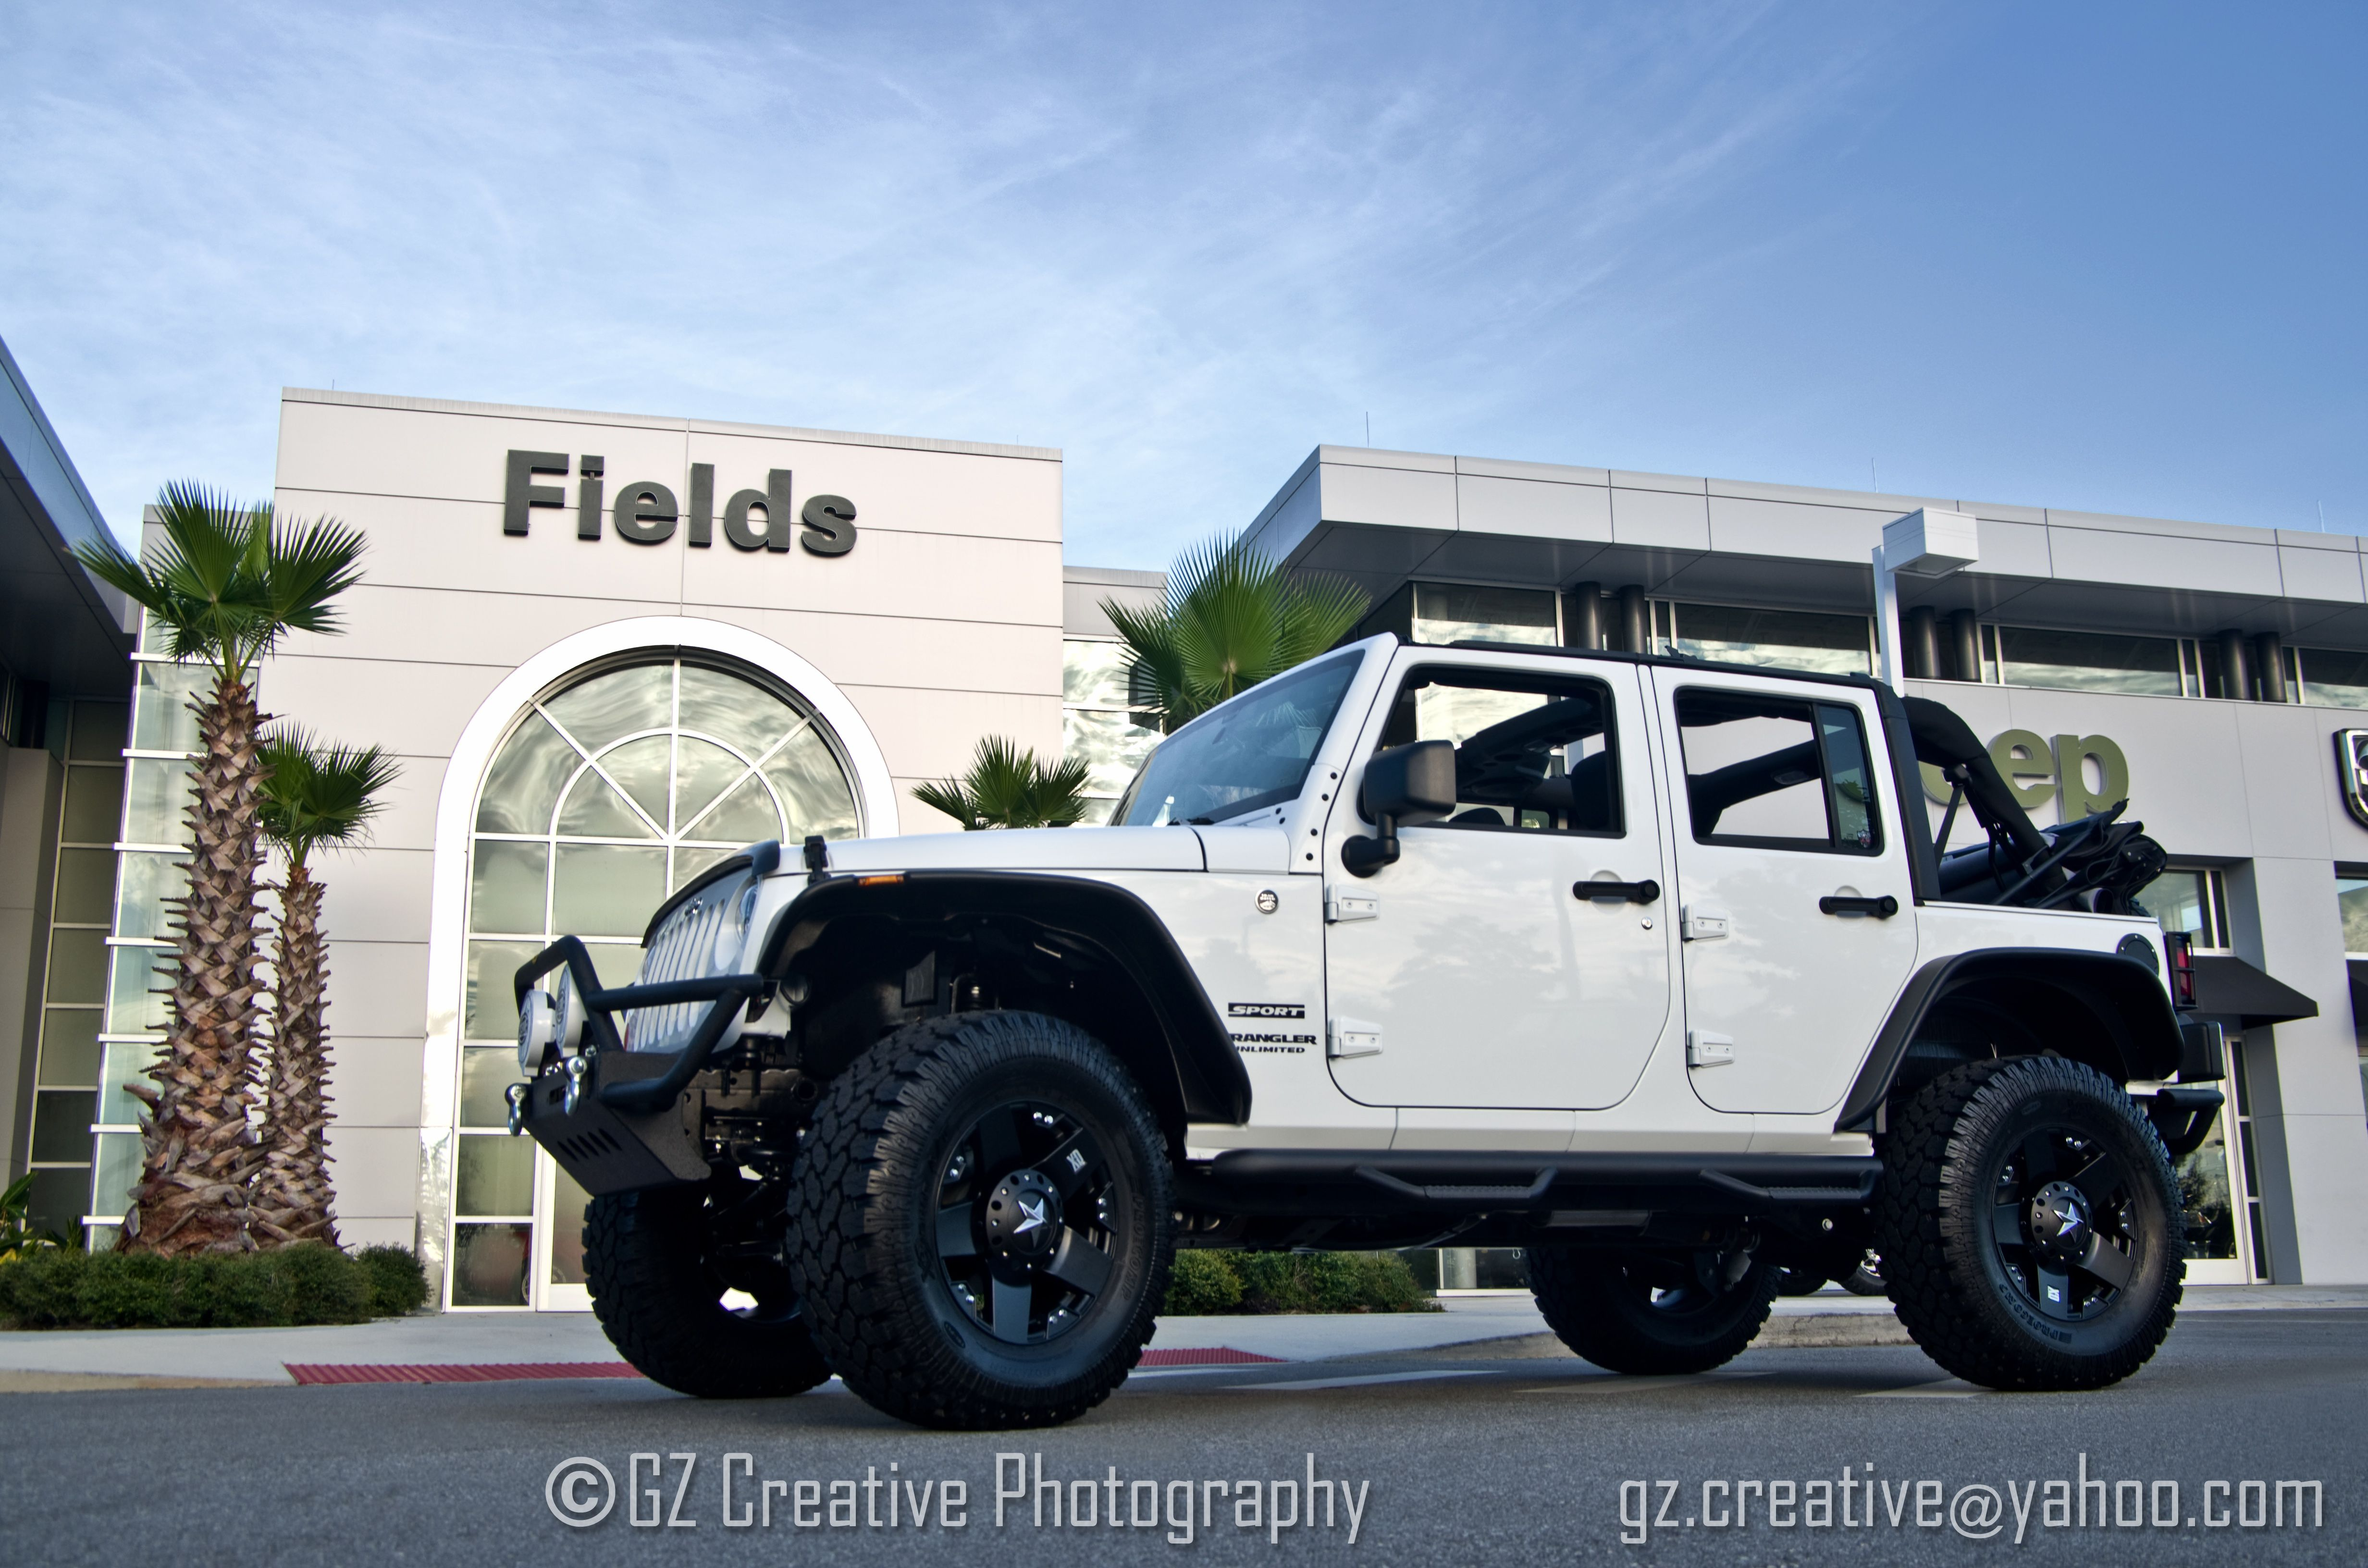 A 2 door jeep wrangler sport after our jam werks florida team customized it at